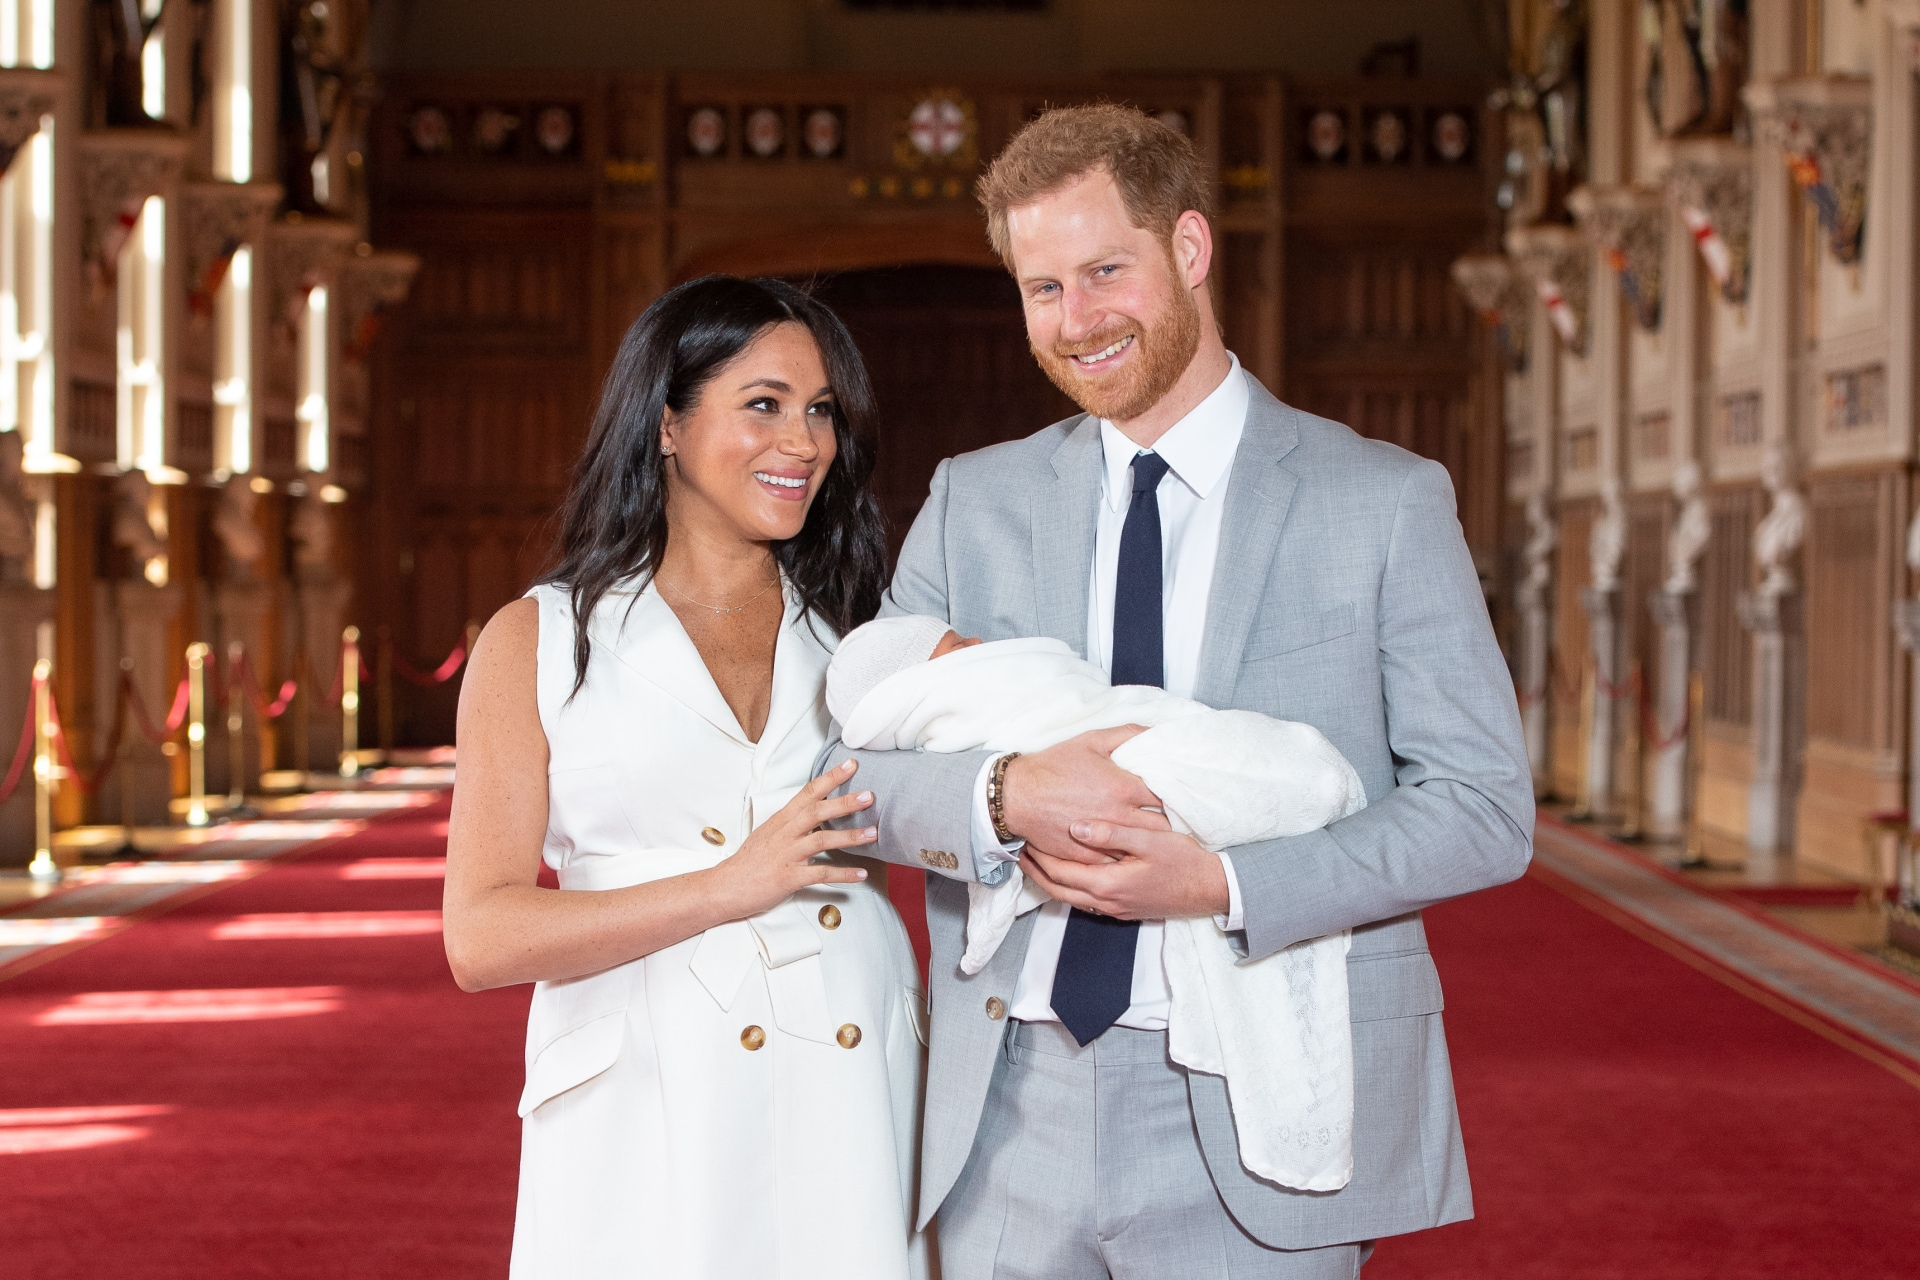 From Buckingham Palace to the Lindo Wing: how royal births have changed and why we're so invested in them